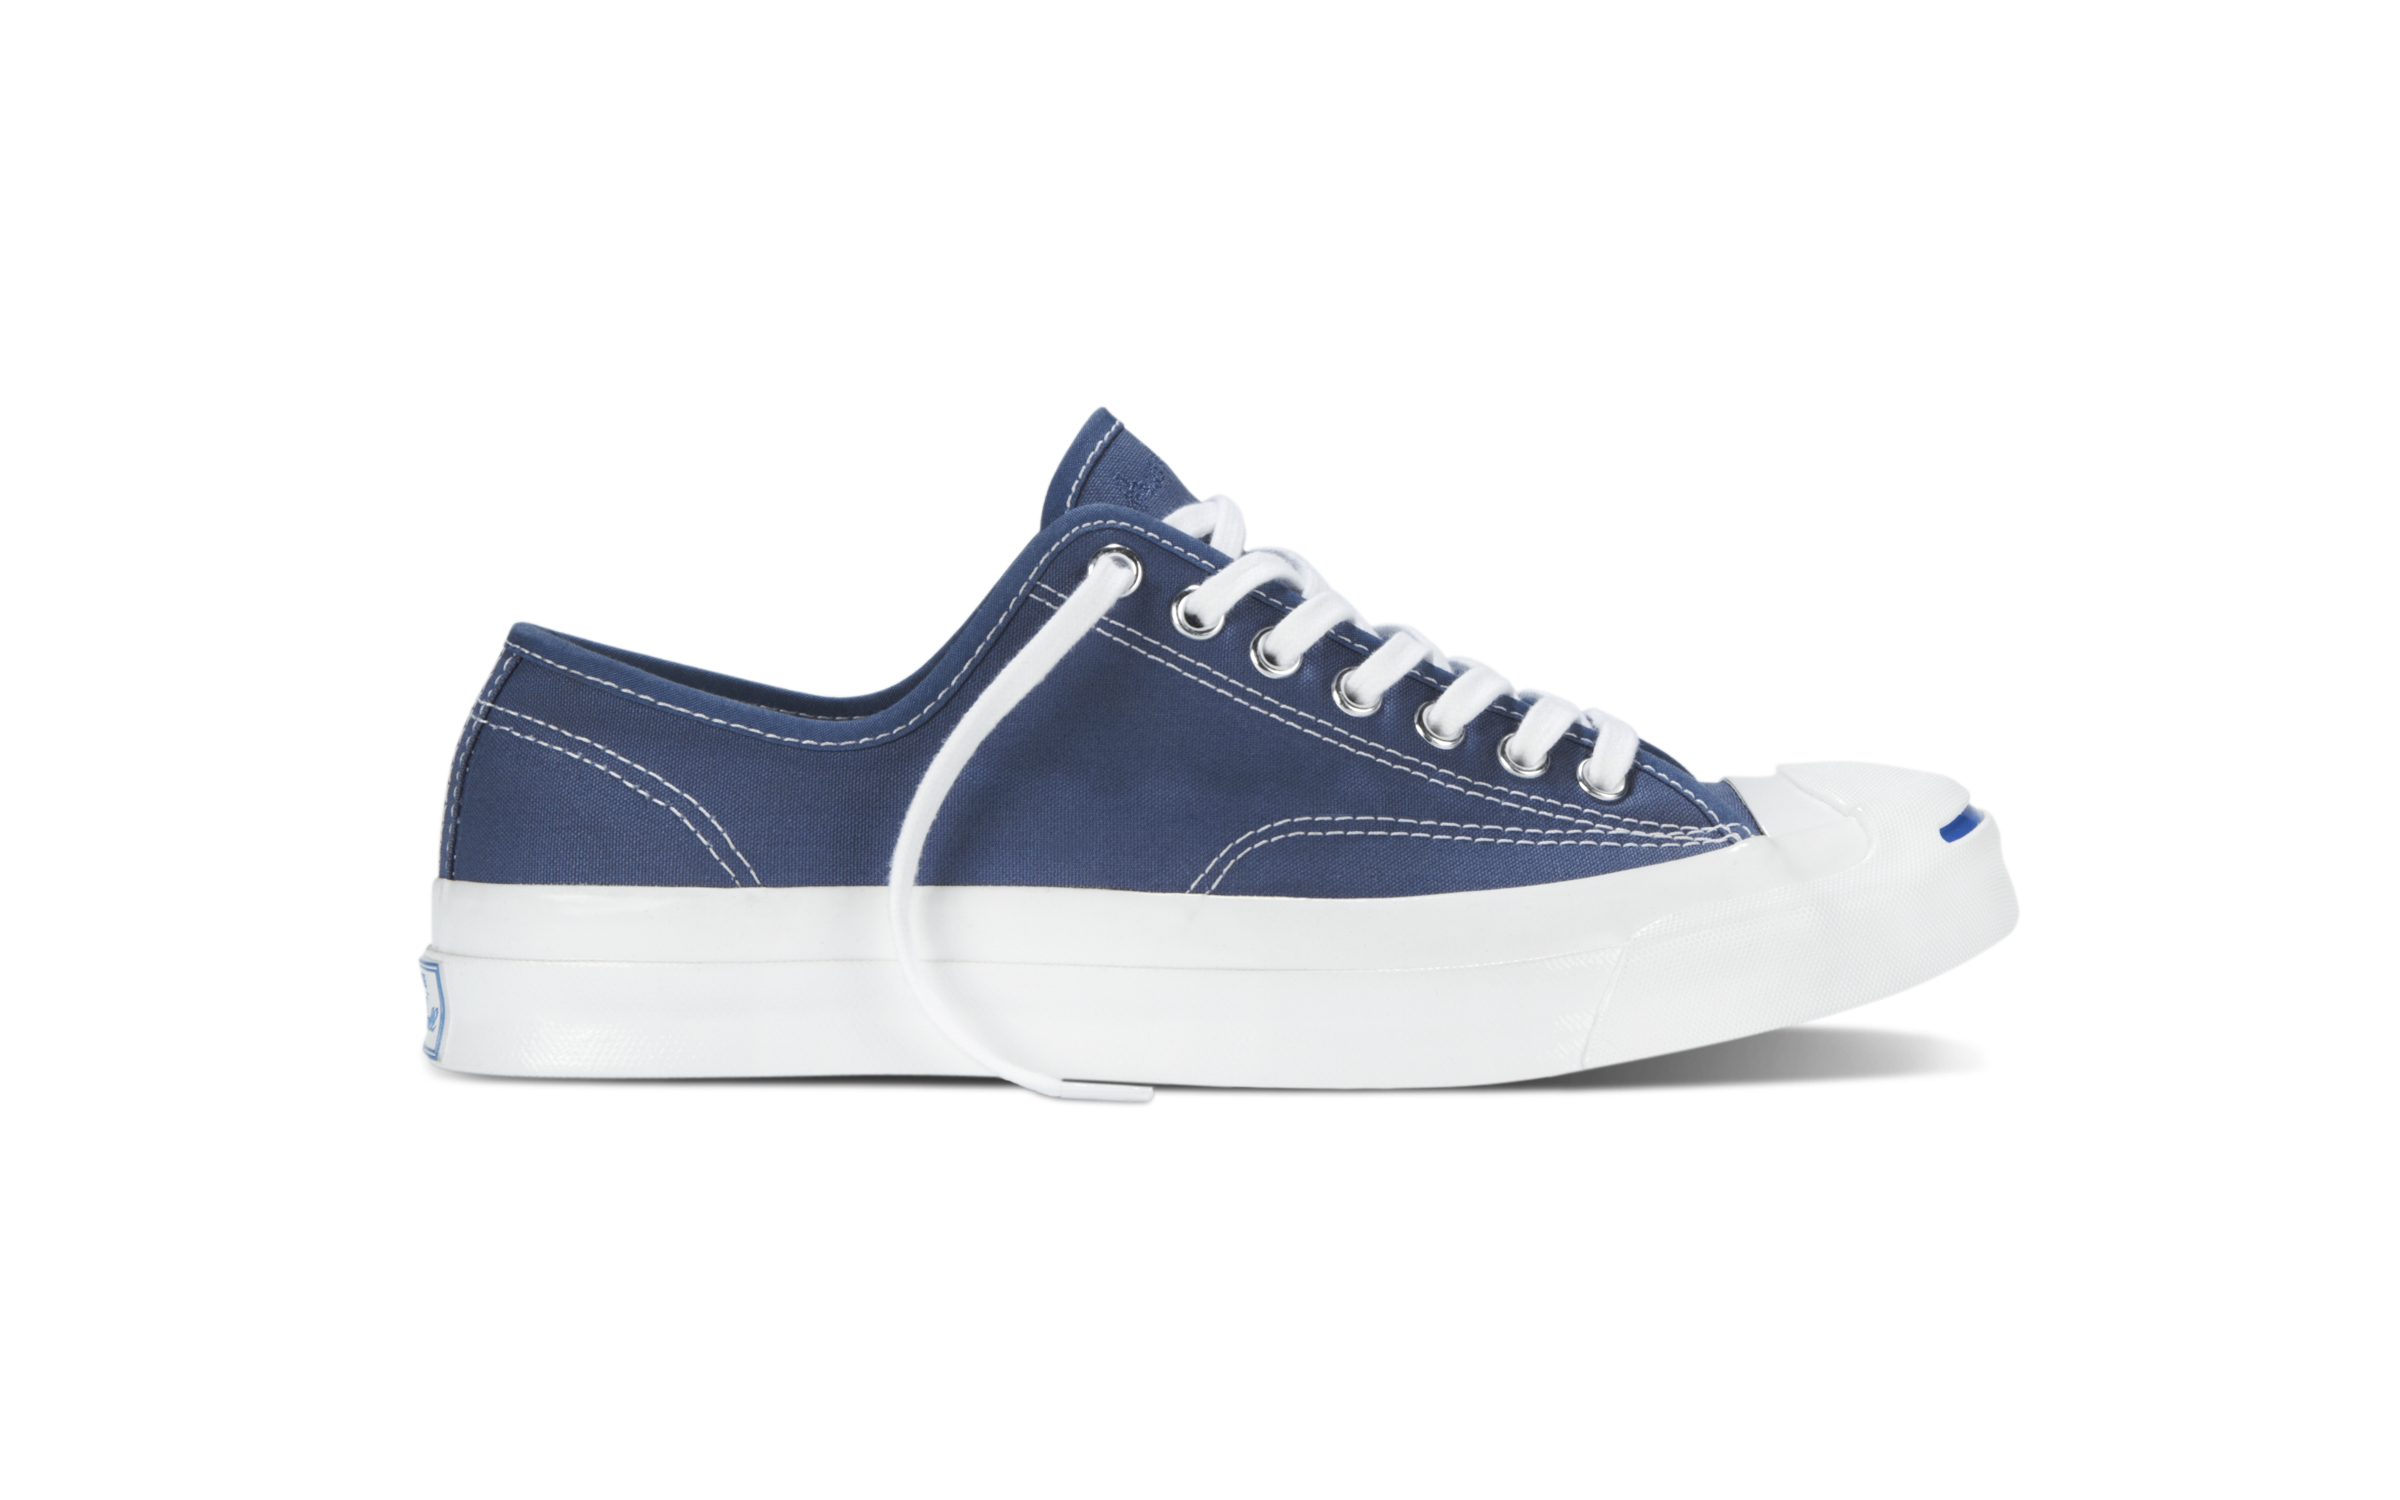 converse jack purcell usa 2016